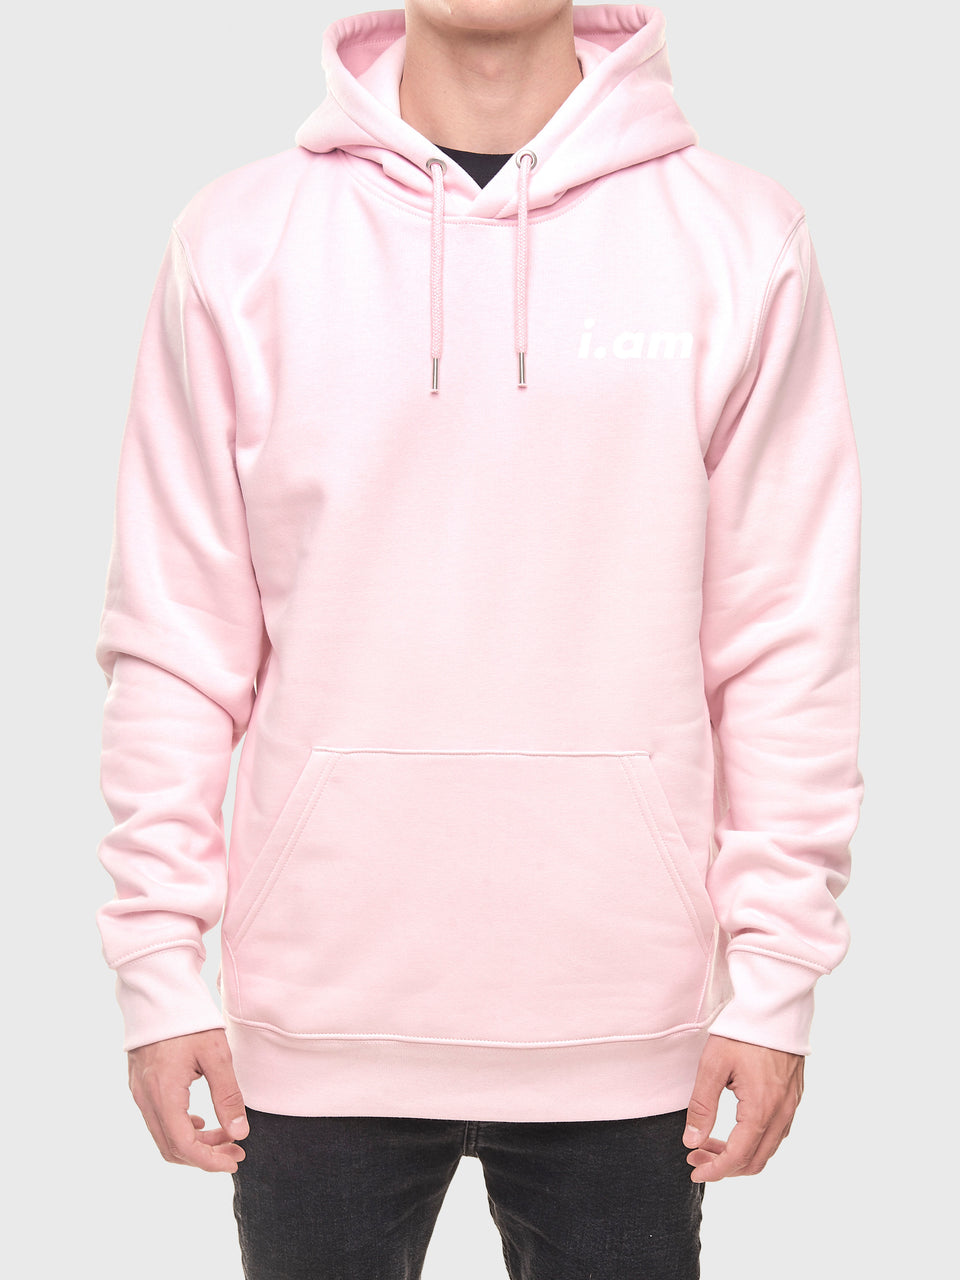 Not a copy - Pink - Unisex pull over hoodie